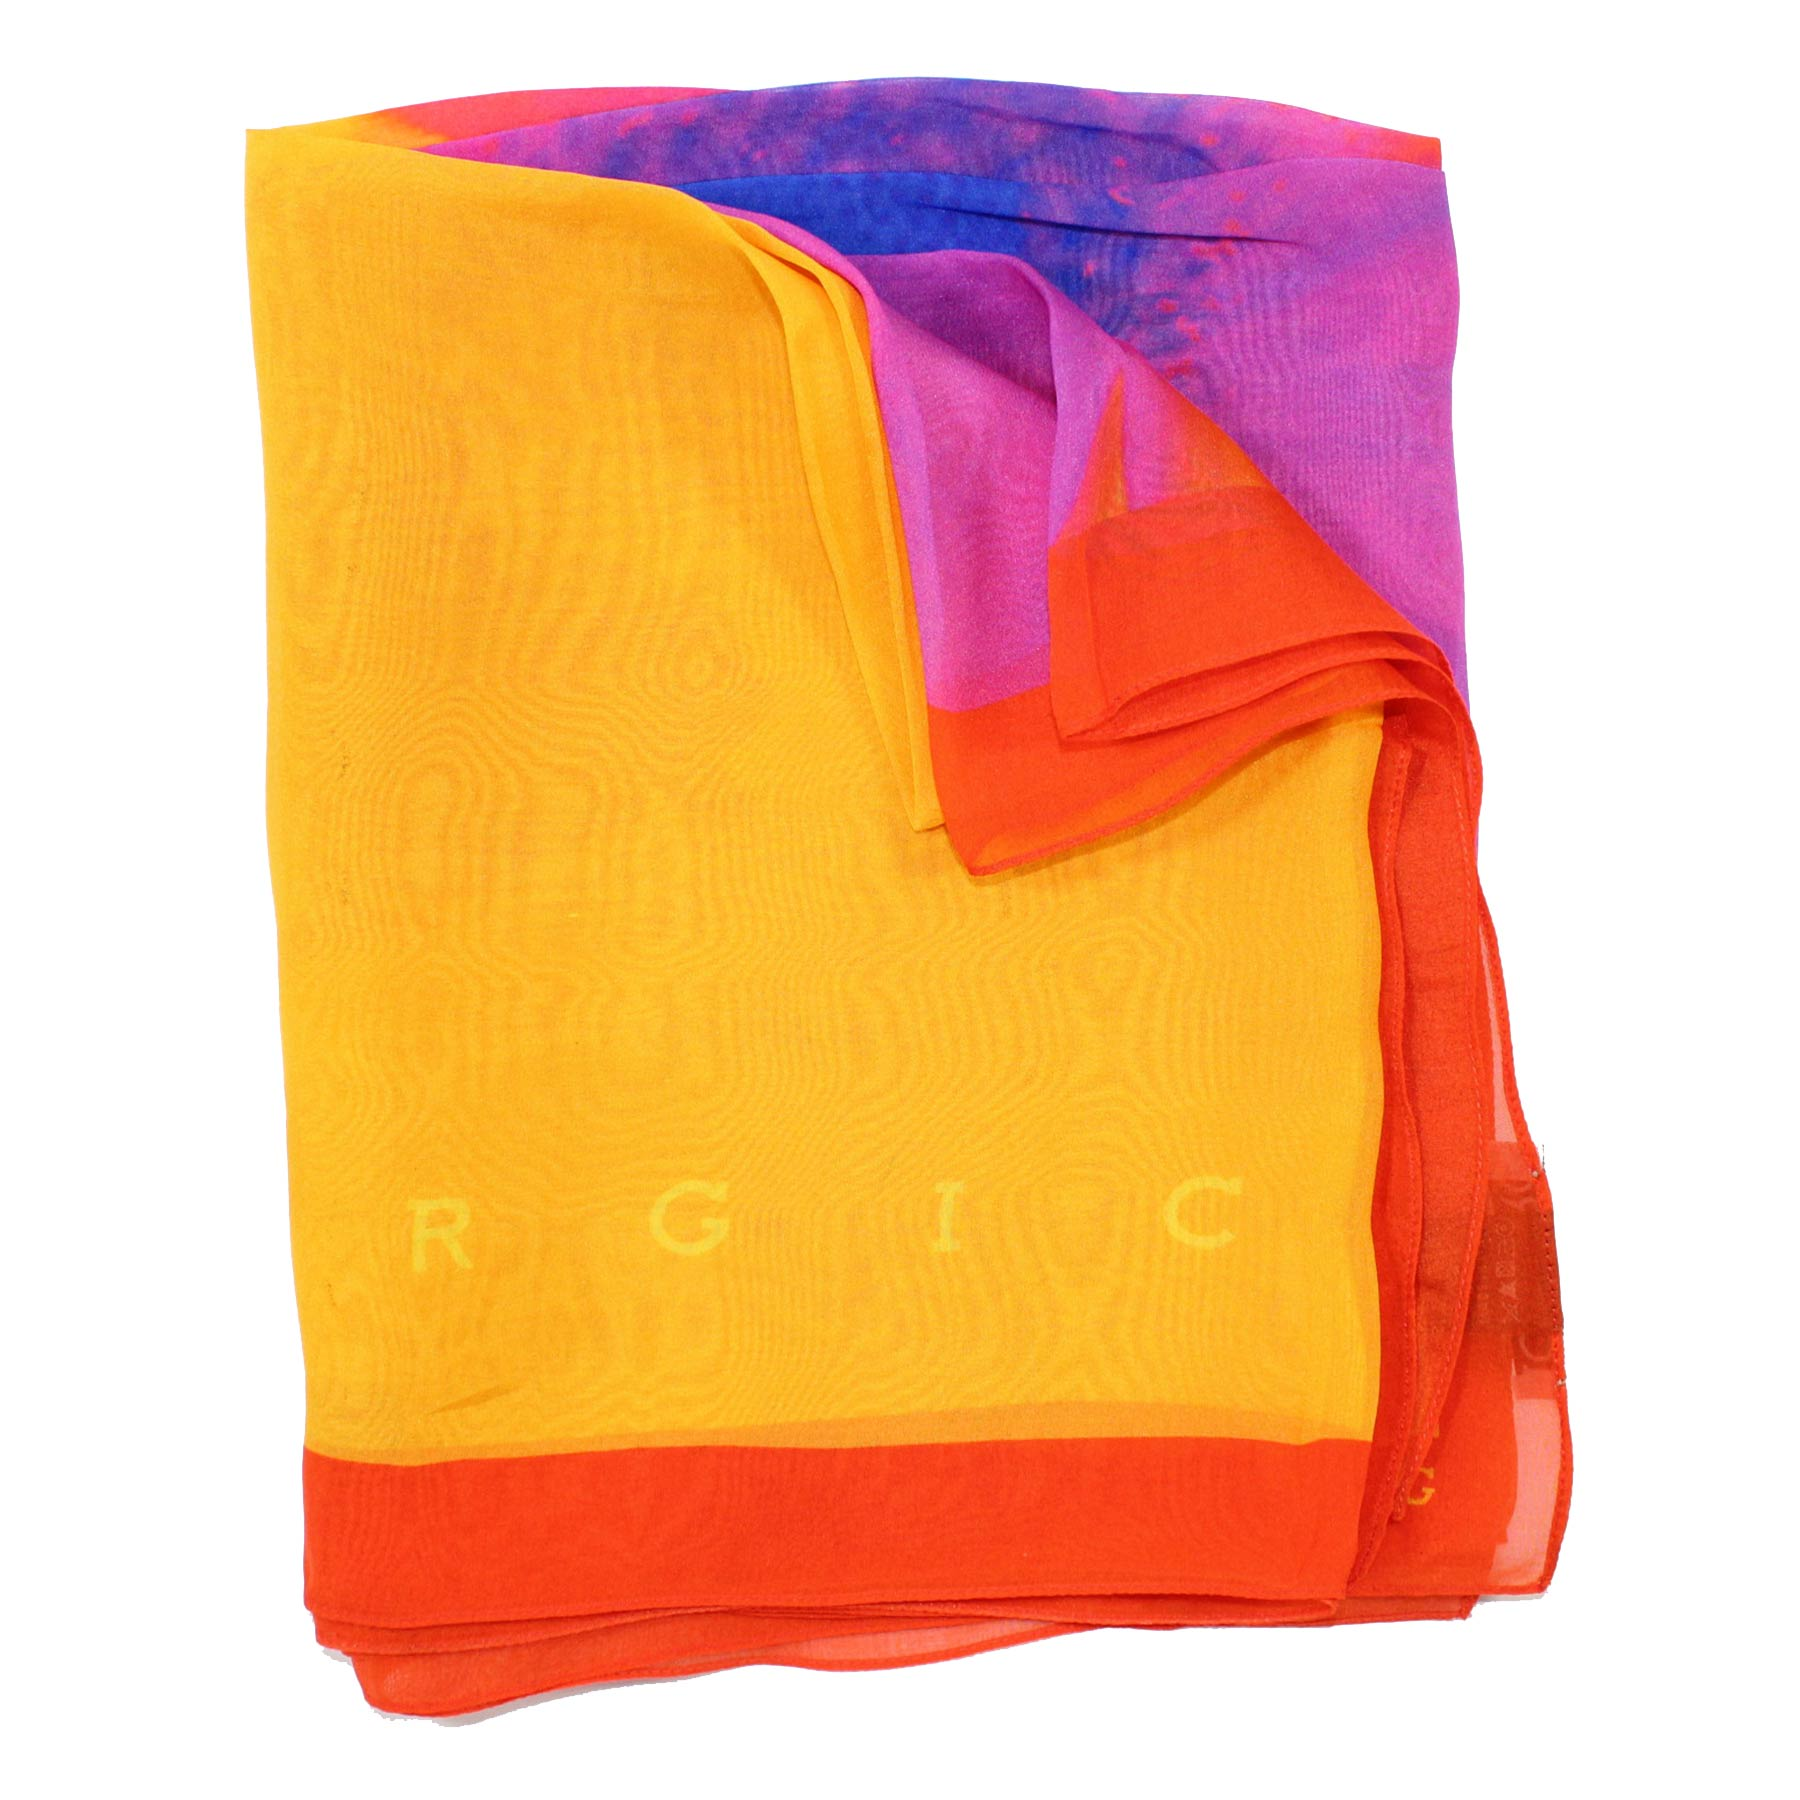 Iceberg Scarf Orange Purple Royal Blue - Silk Shawl SALE